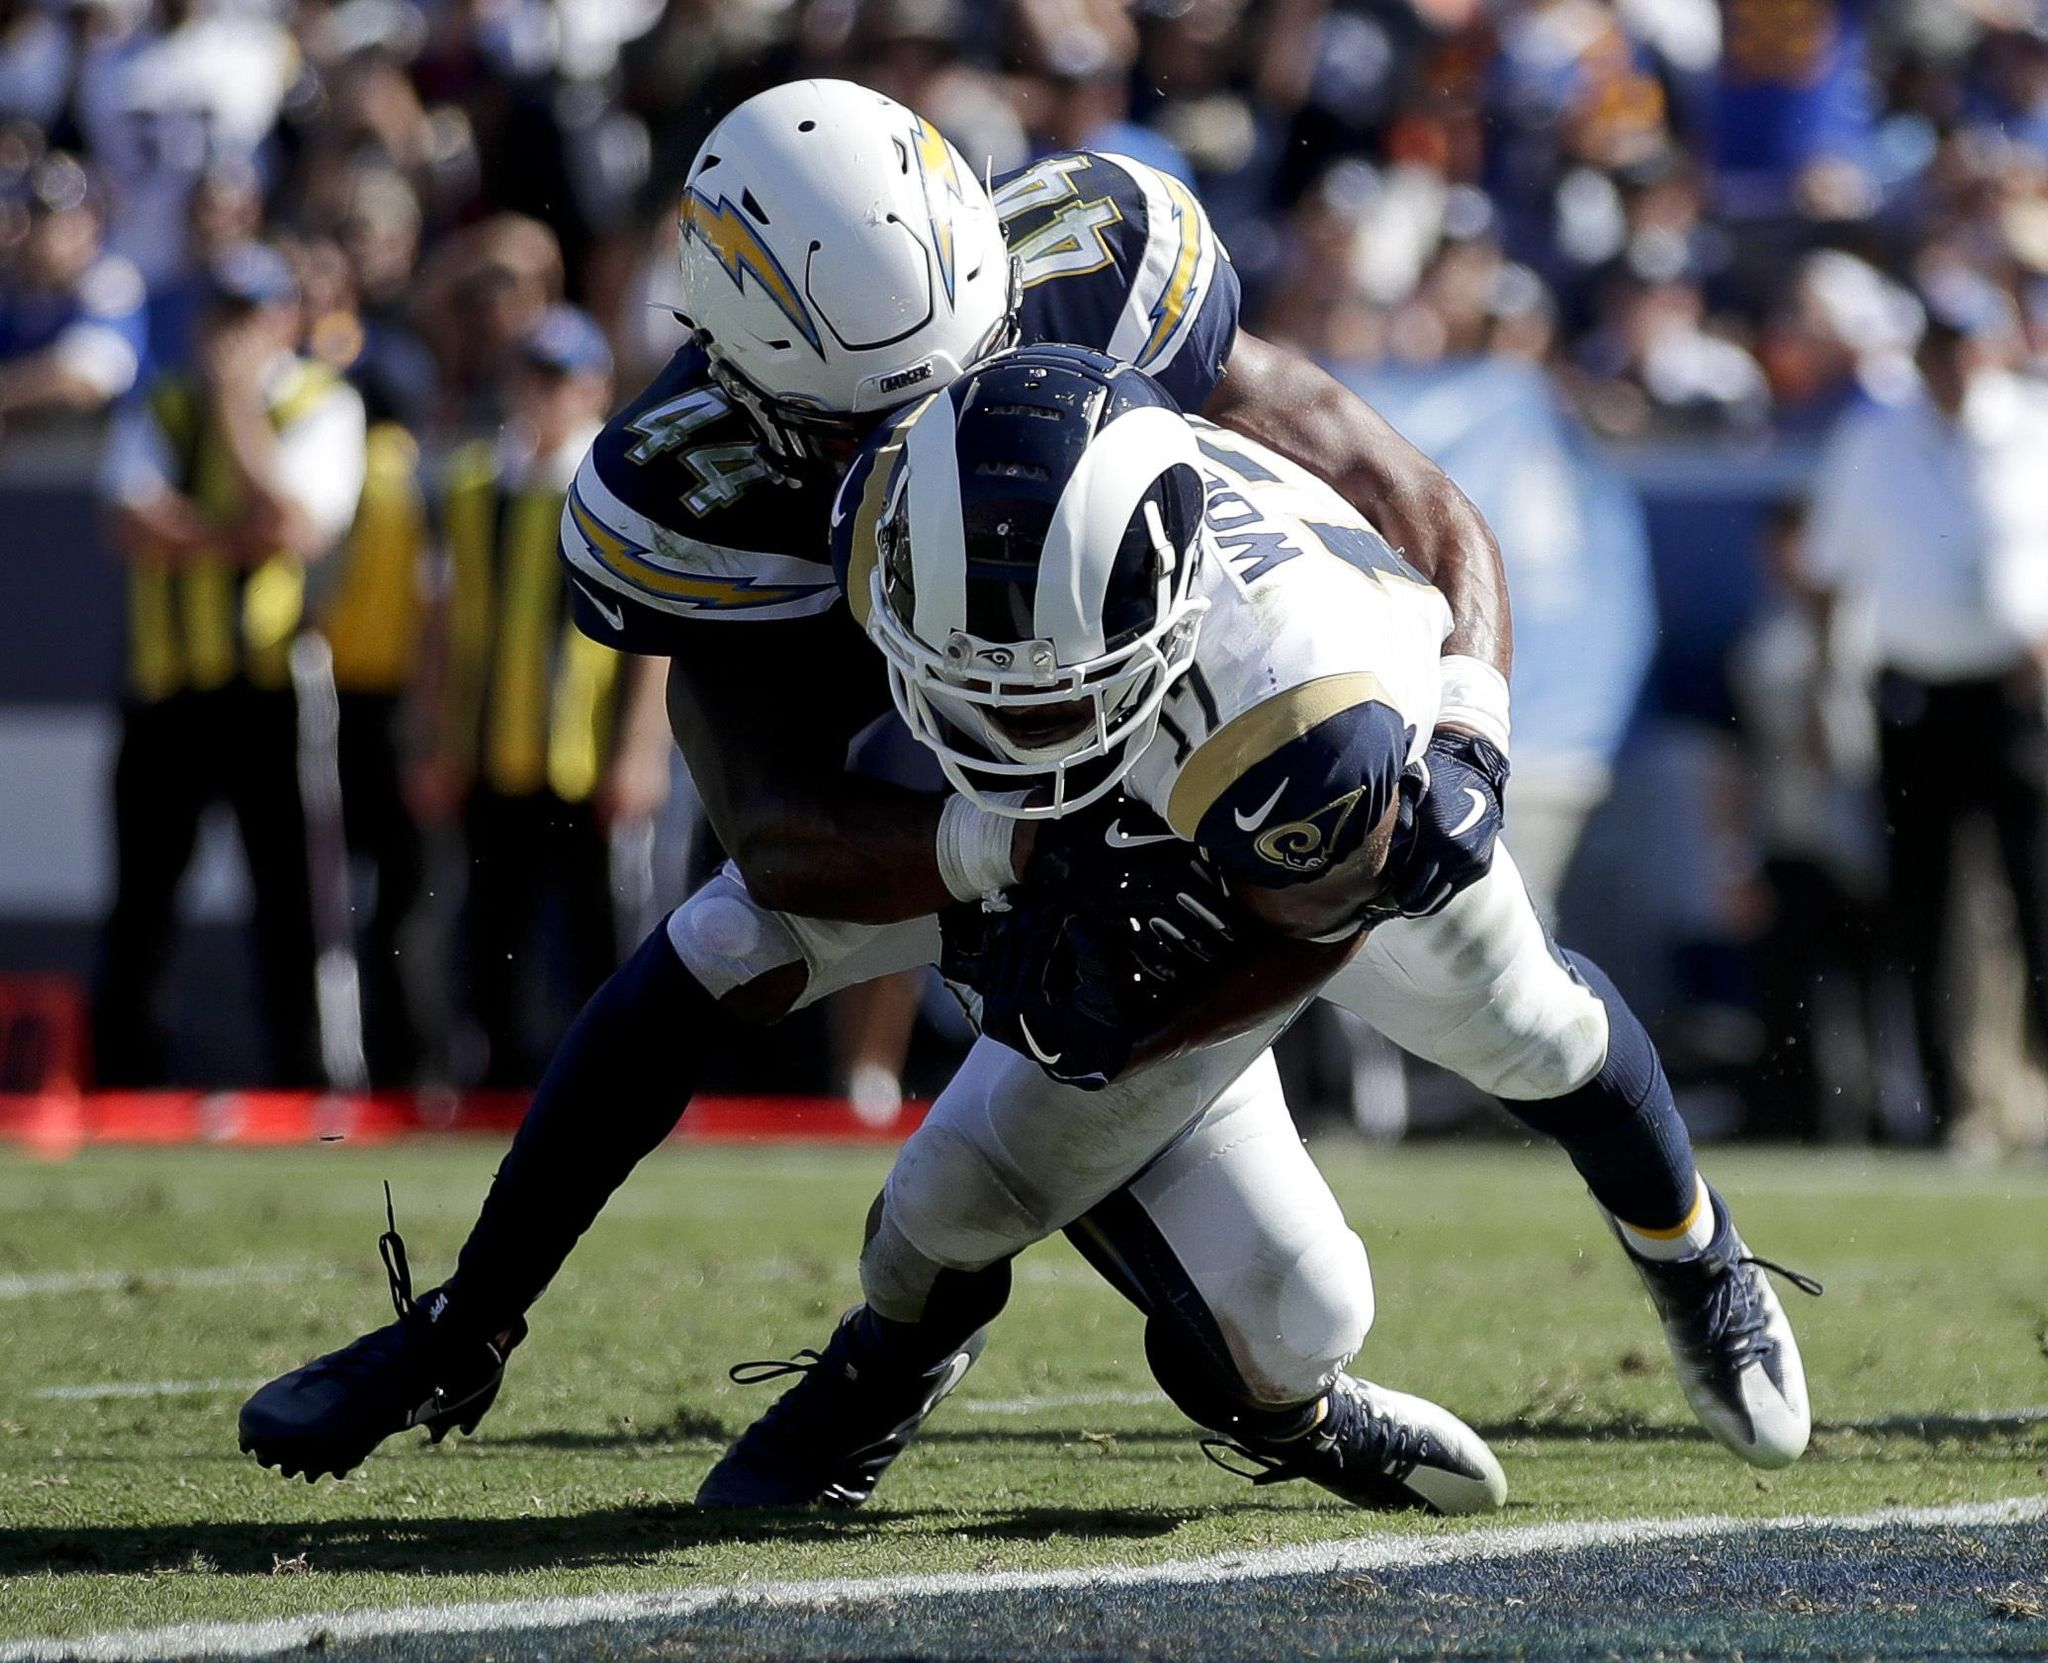 Chargers' defense laments lack of pass rush in loss to Rams - Washington Times